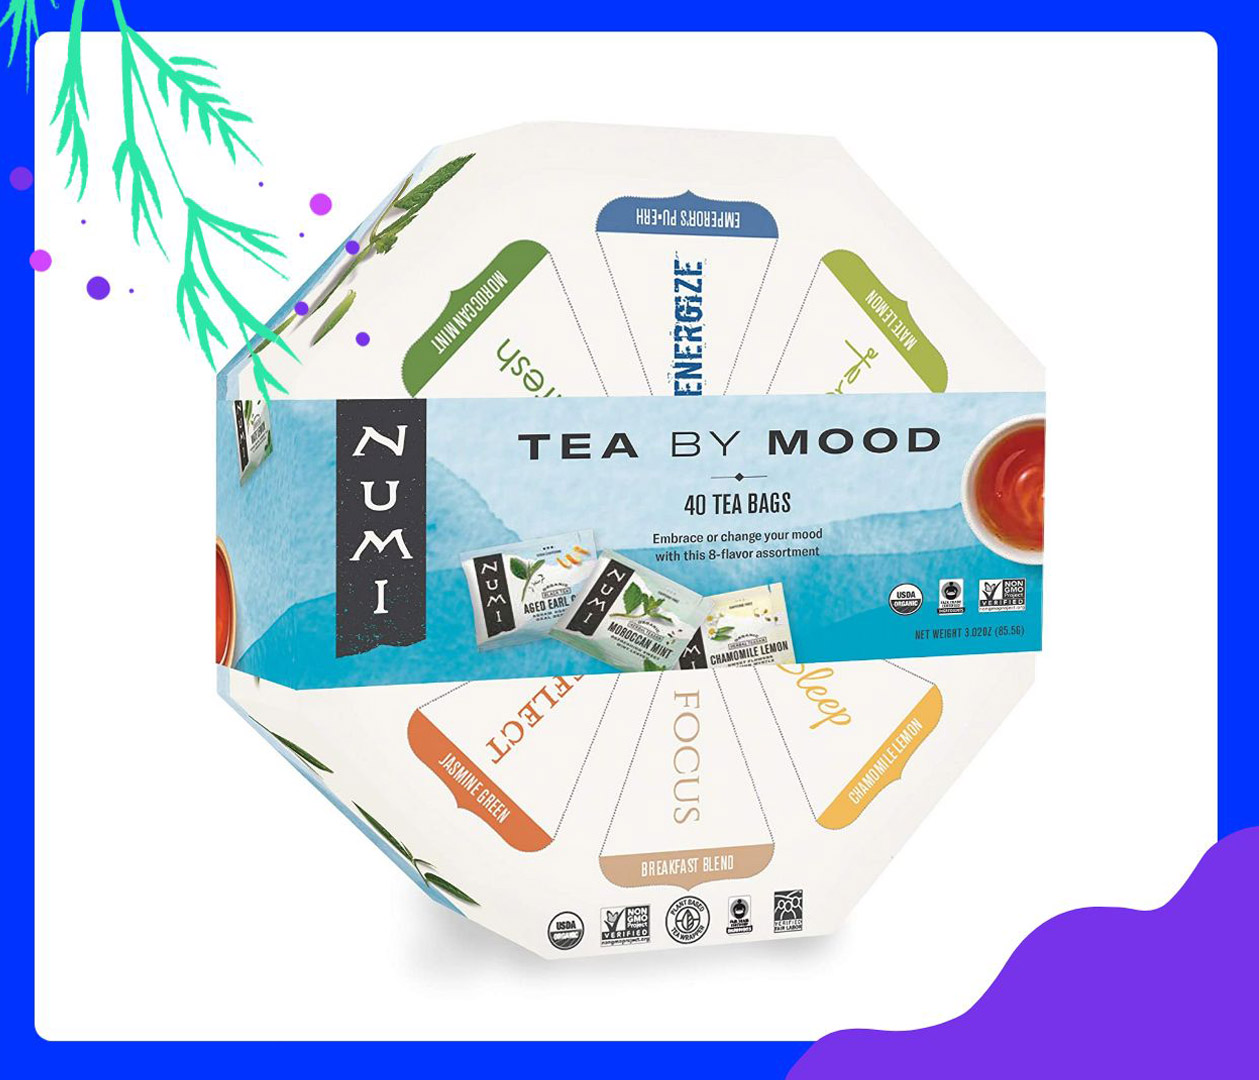 Teas for every mood Numi Healthcare